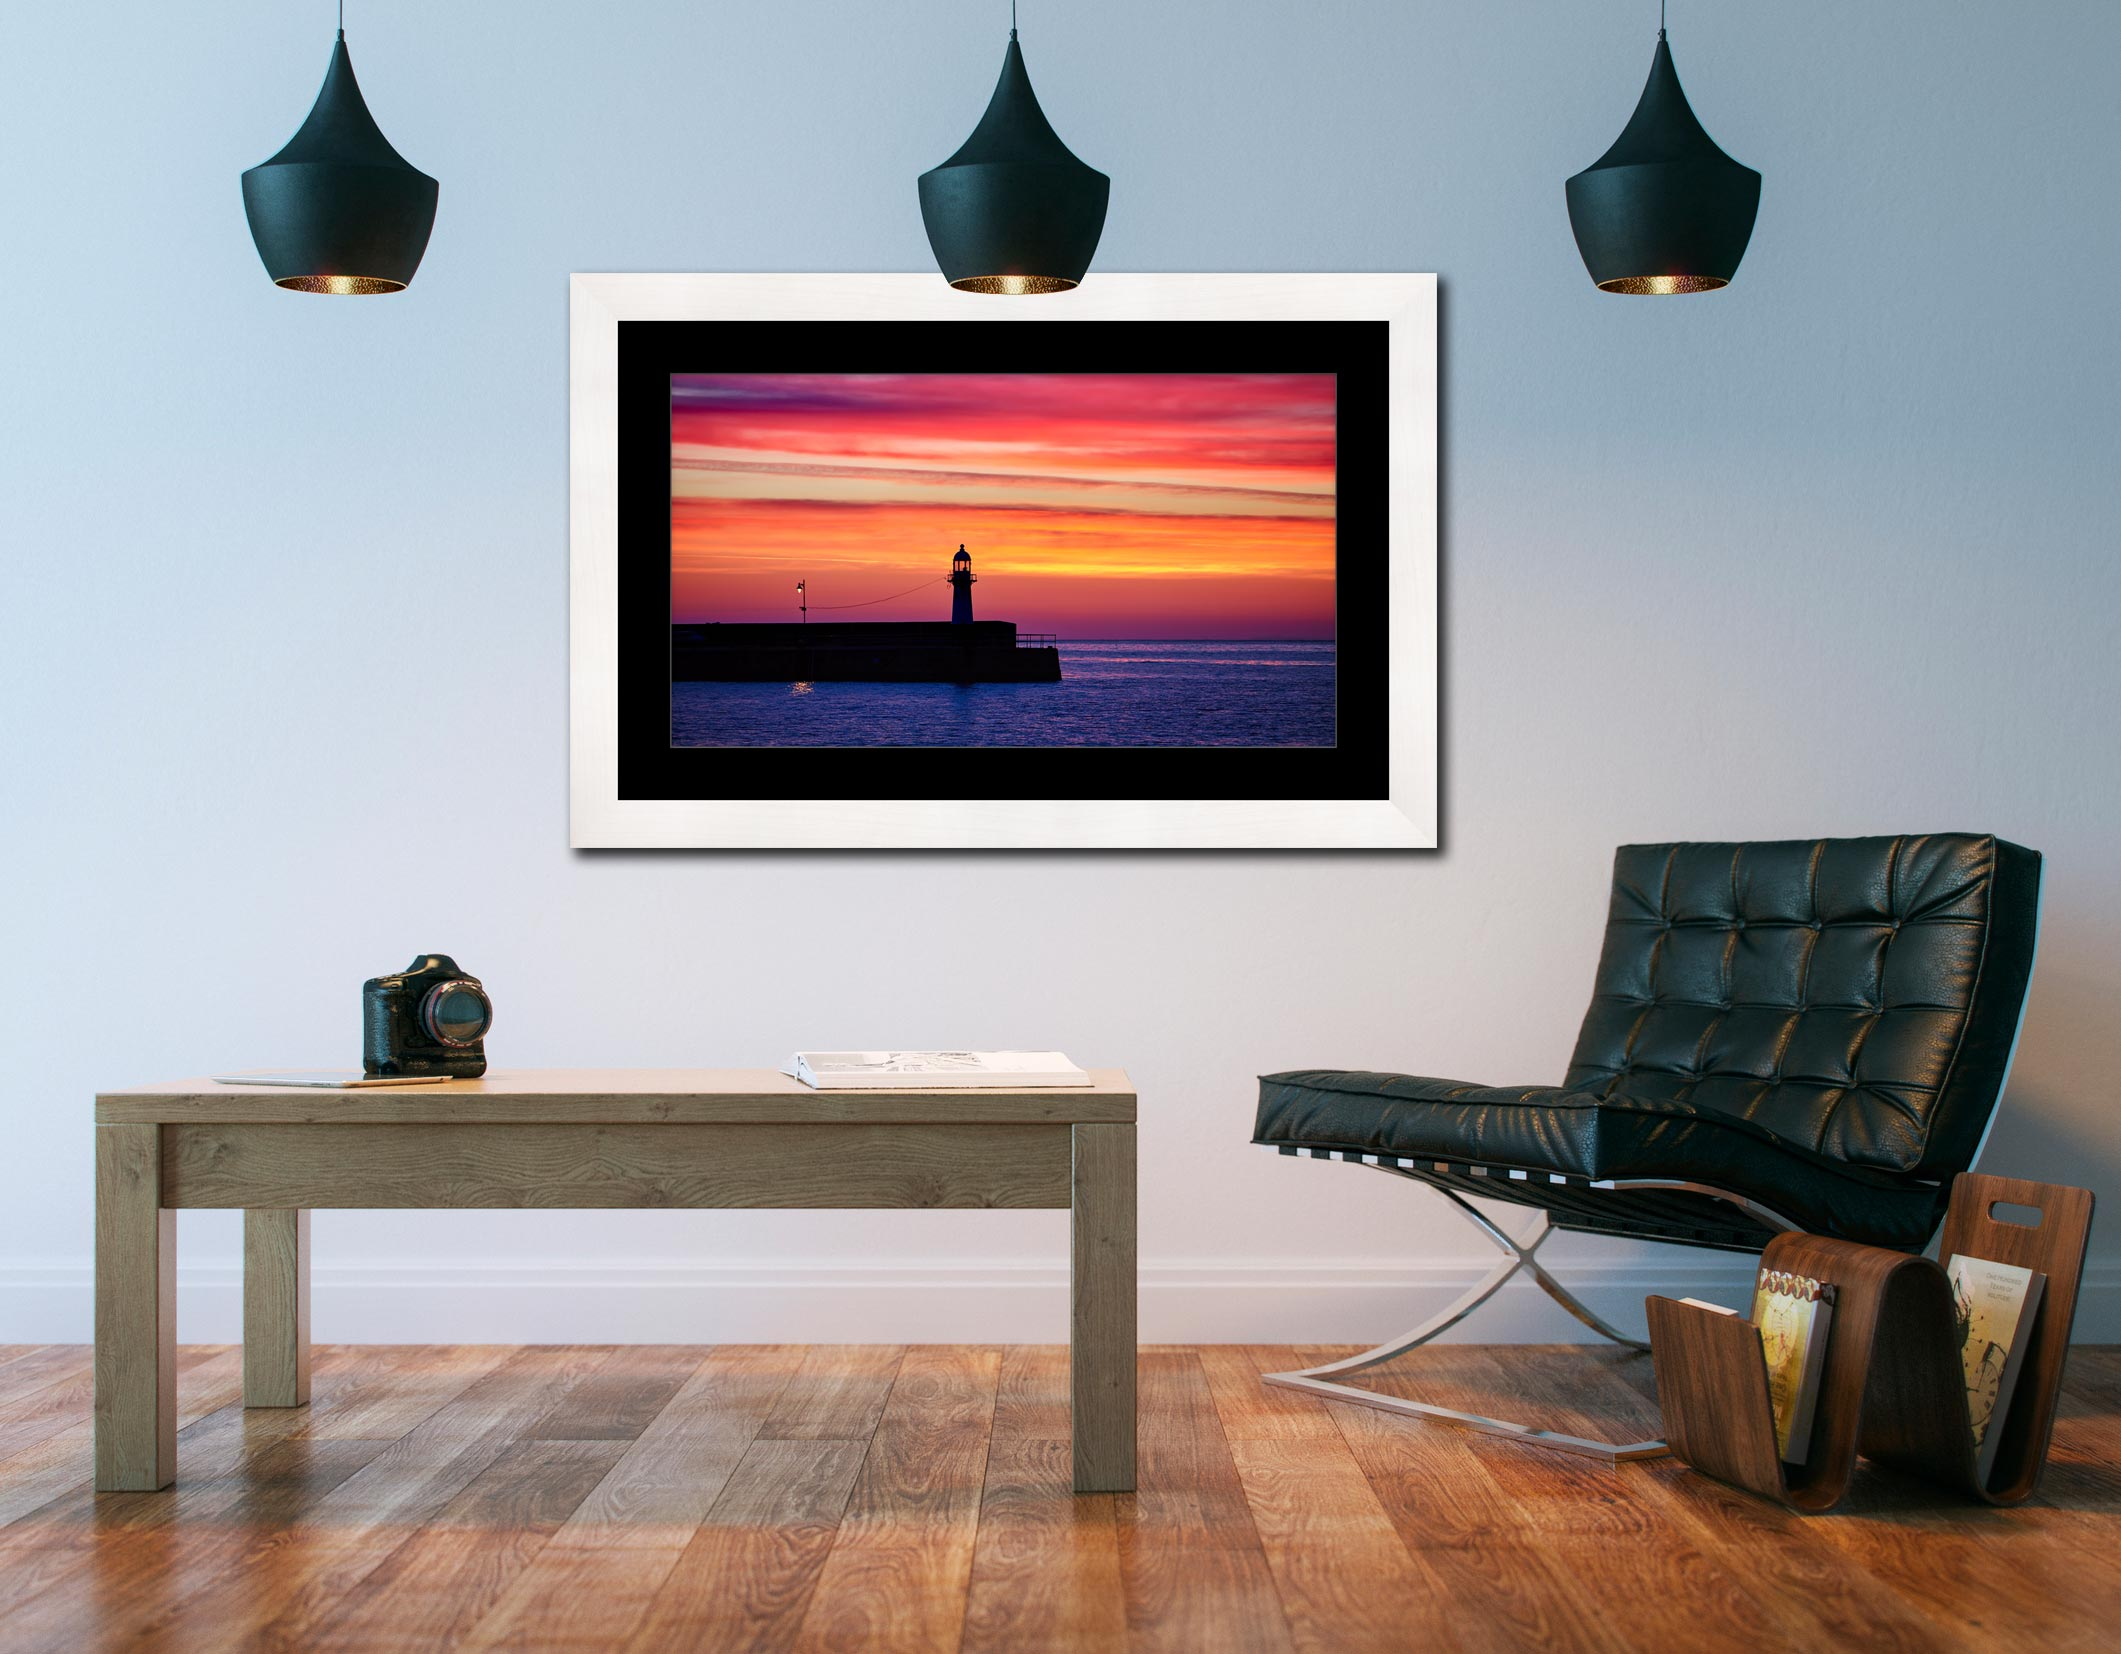 Lighthouse and the Lamp - Framed Print with Mount on Wall